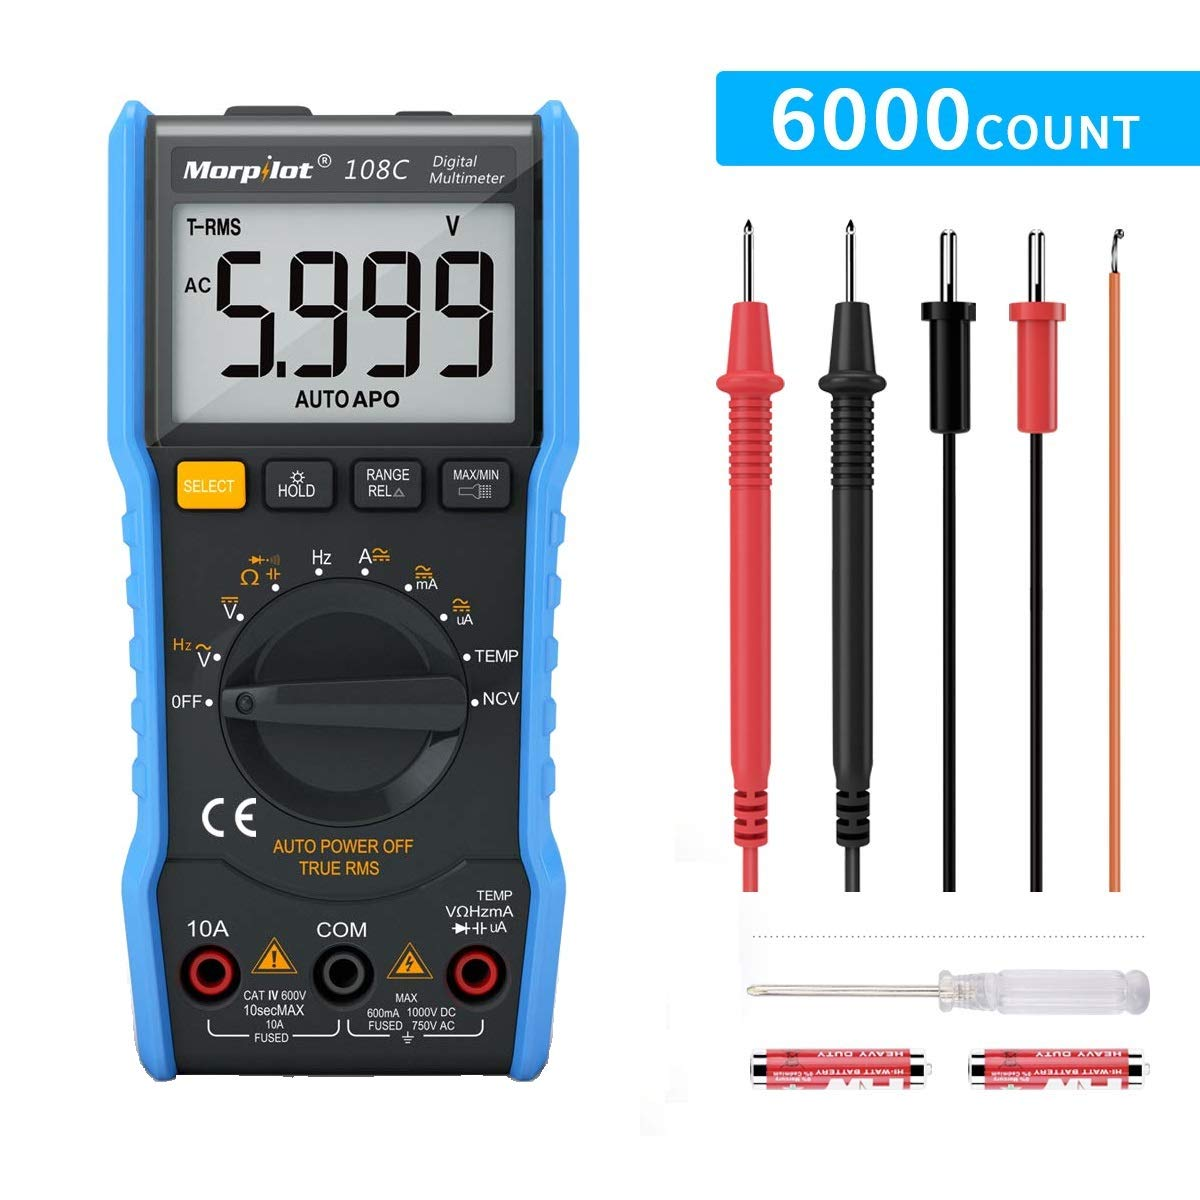 Digital Multimeter,TRMS 6000 Counts Manual and Auto Ranging, Amp Volt Ohm DC/AC Current & Voltage Multimeter, NCV, Live Line, Diode, Resistance, Frequency, Capacitance, Temperature, Test Leads. by Keenstone